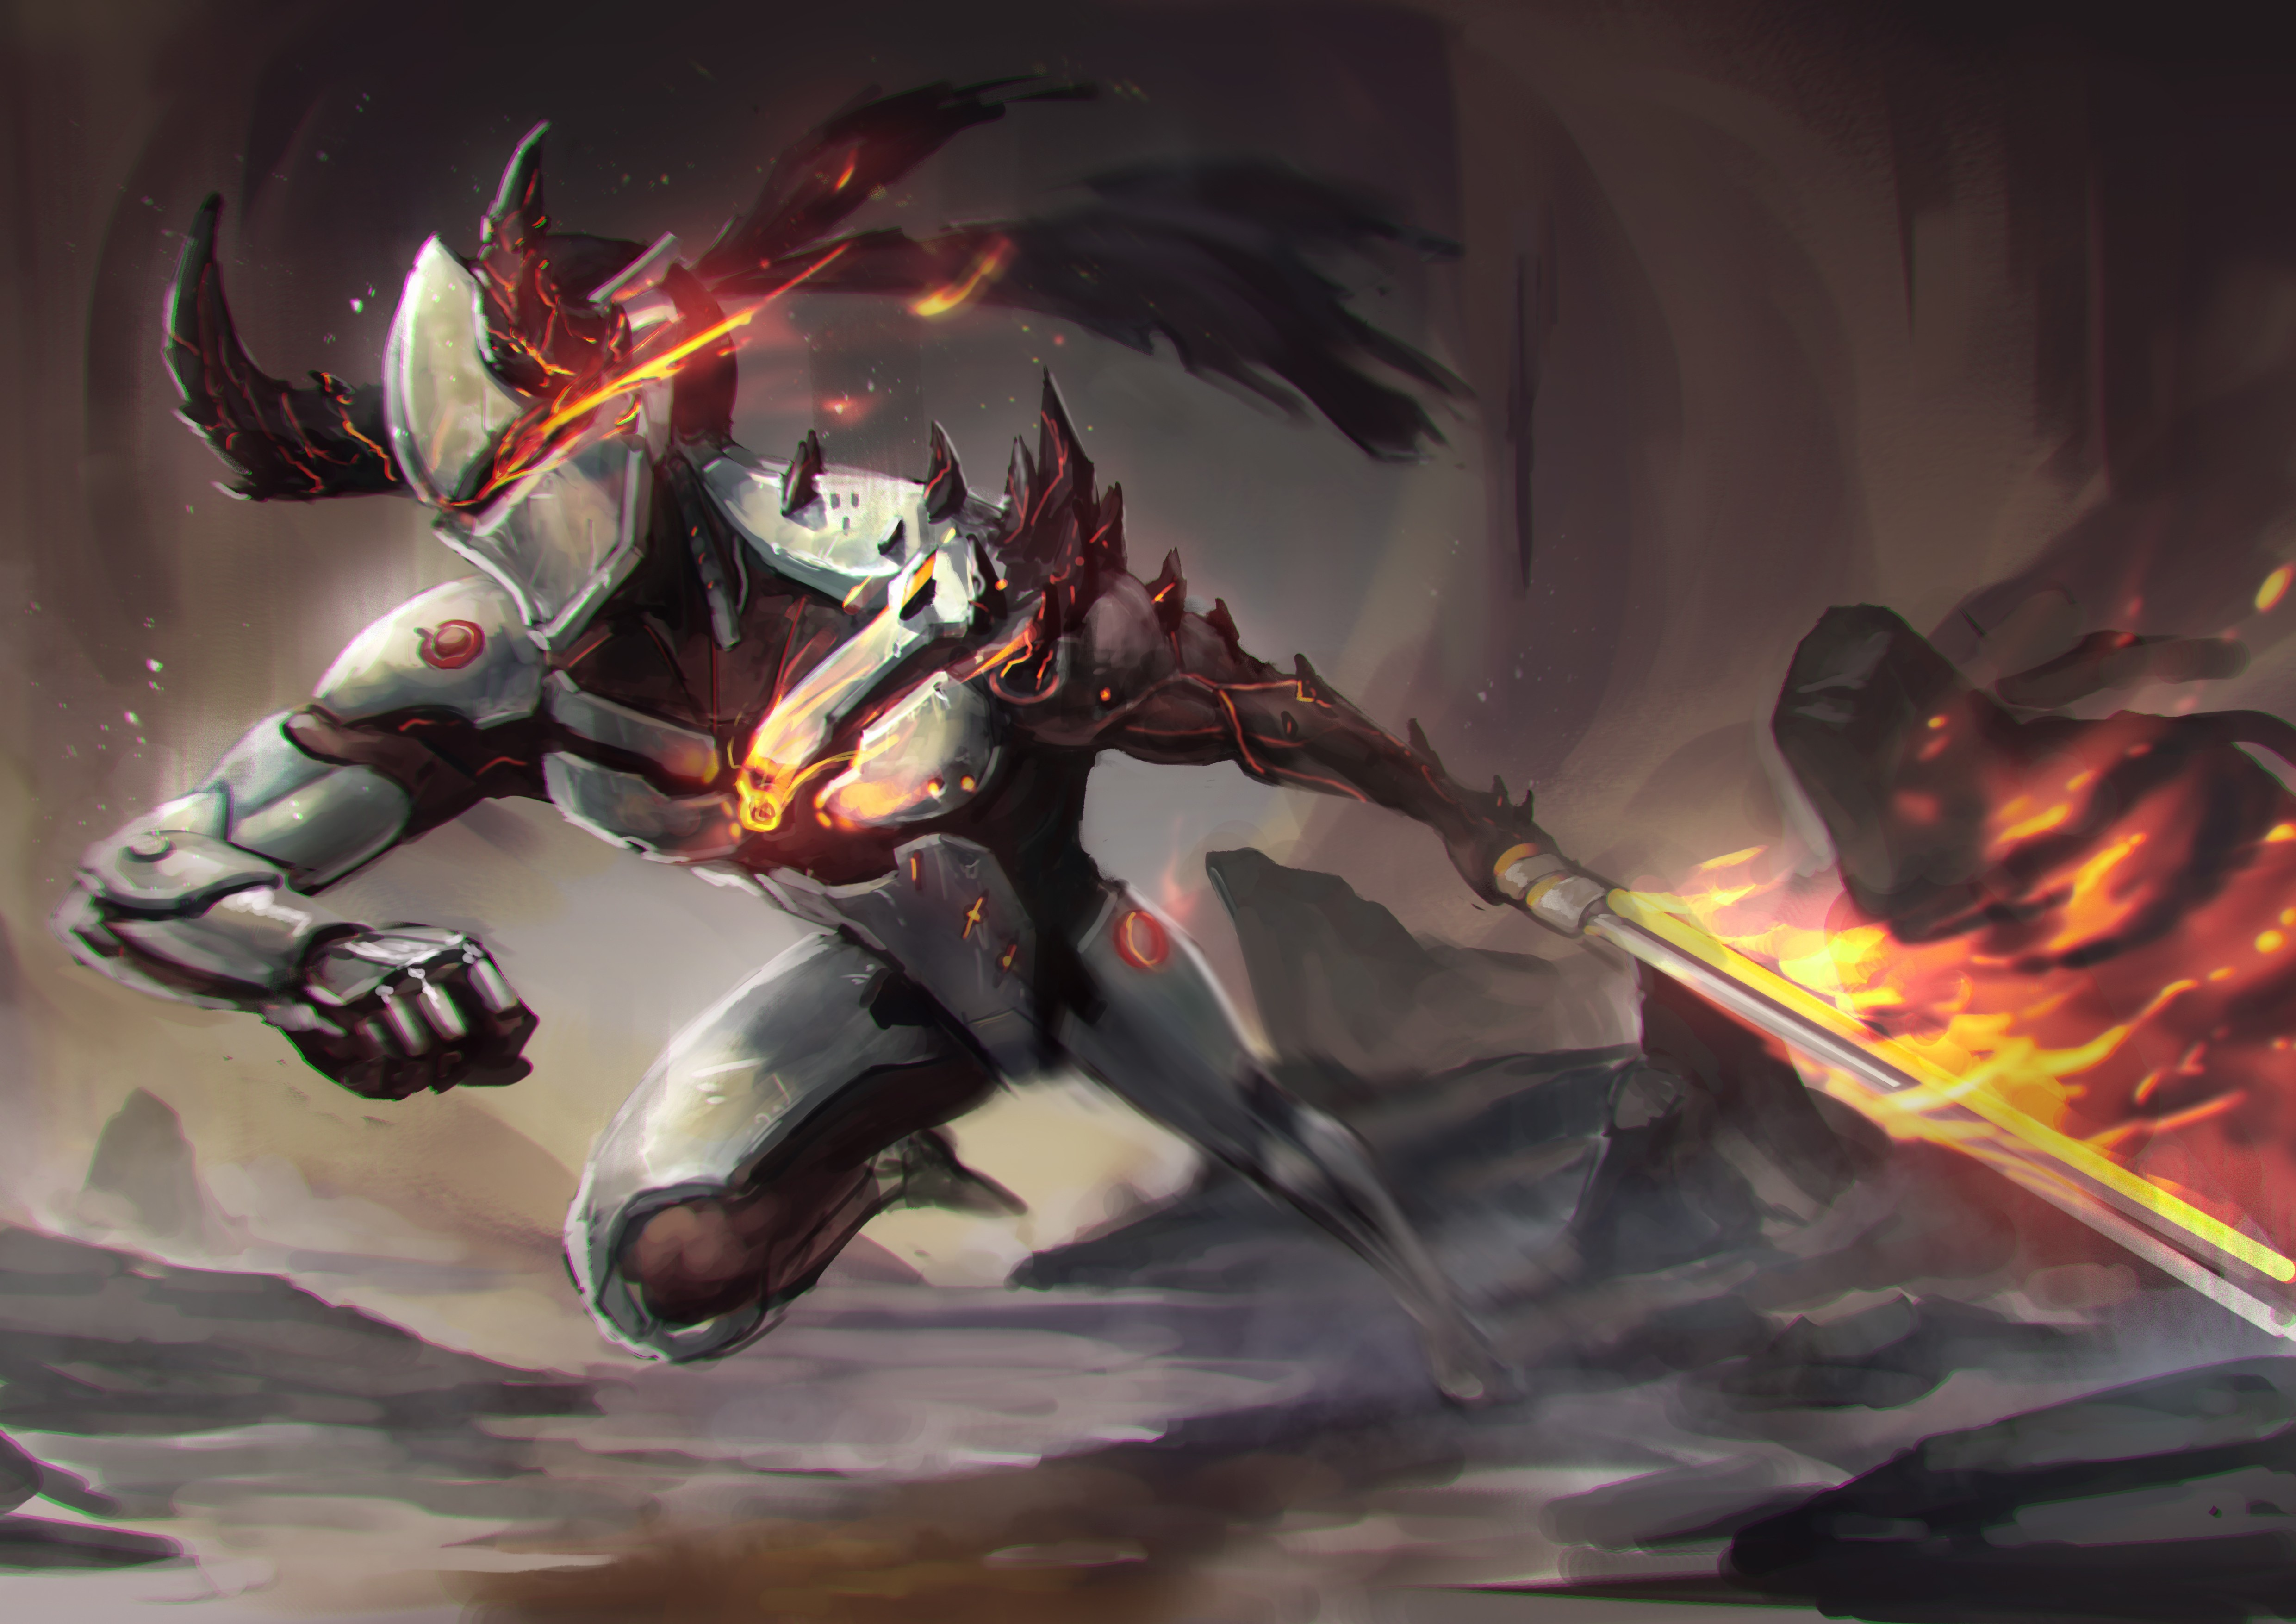 Download Wallpaper Fire Flame Sword Game Armor Mecha Weapon Man Ken Blade Dragon Ninja Asian Suit Shinobi God Section Games In Resolution 4961x3508 Then click the skip ad button at the top right of your screen. goodfon com